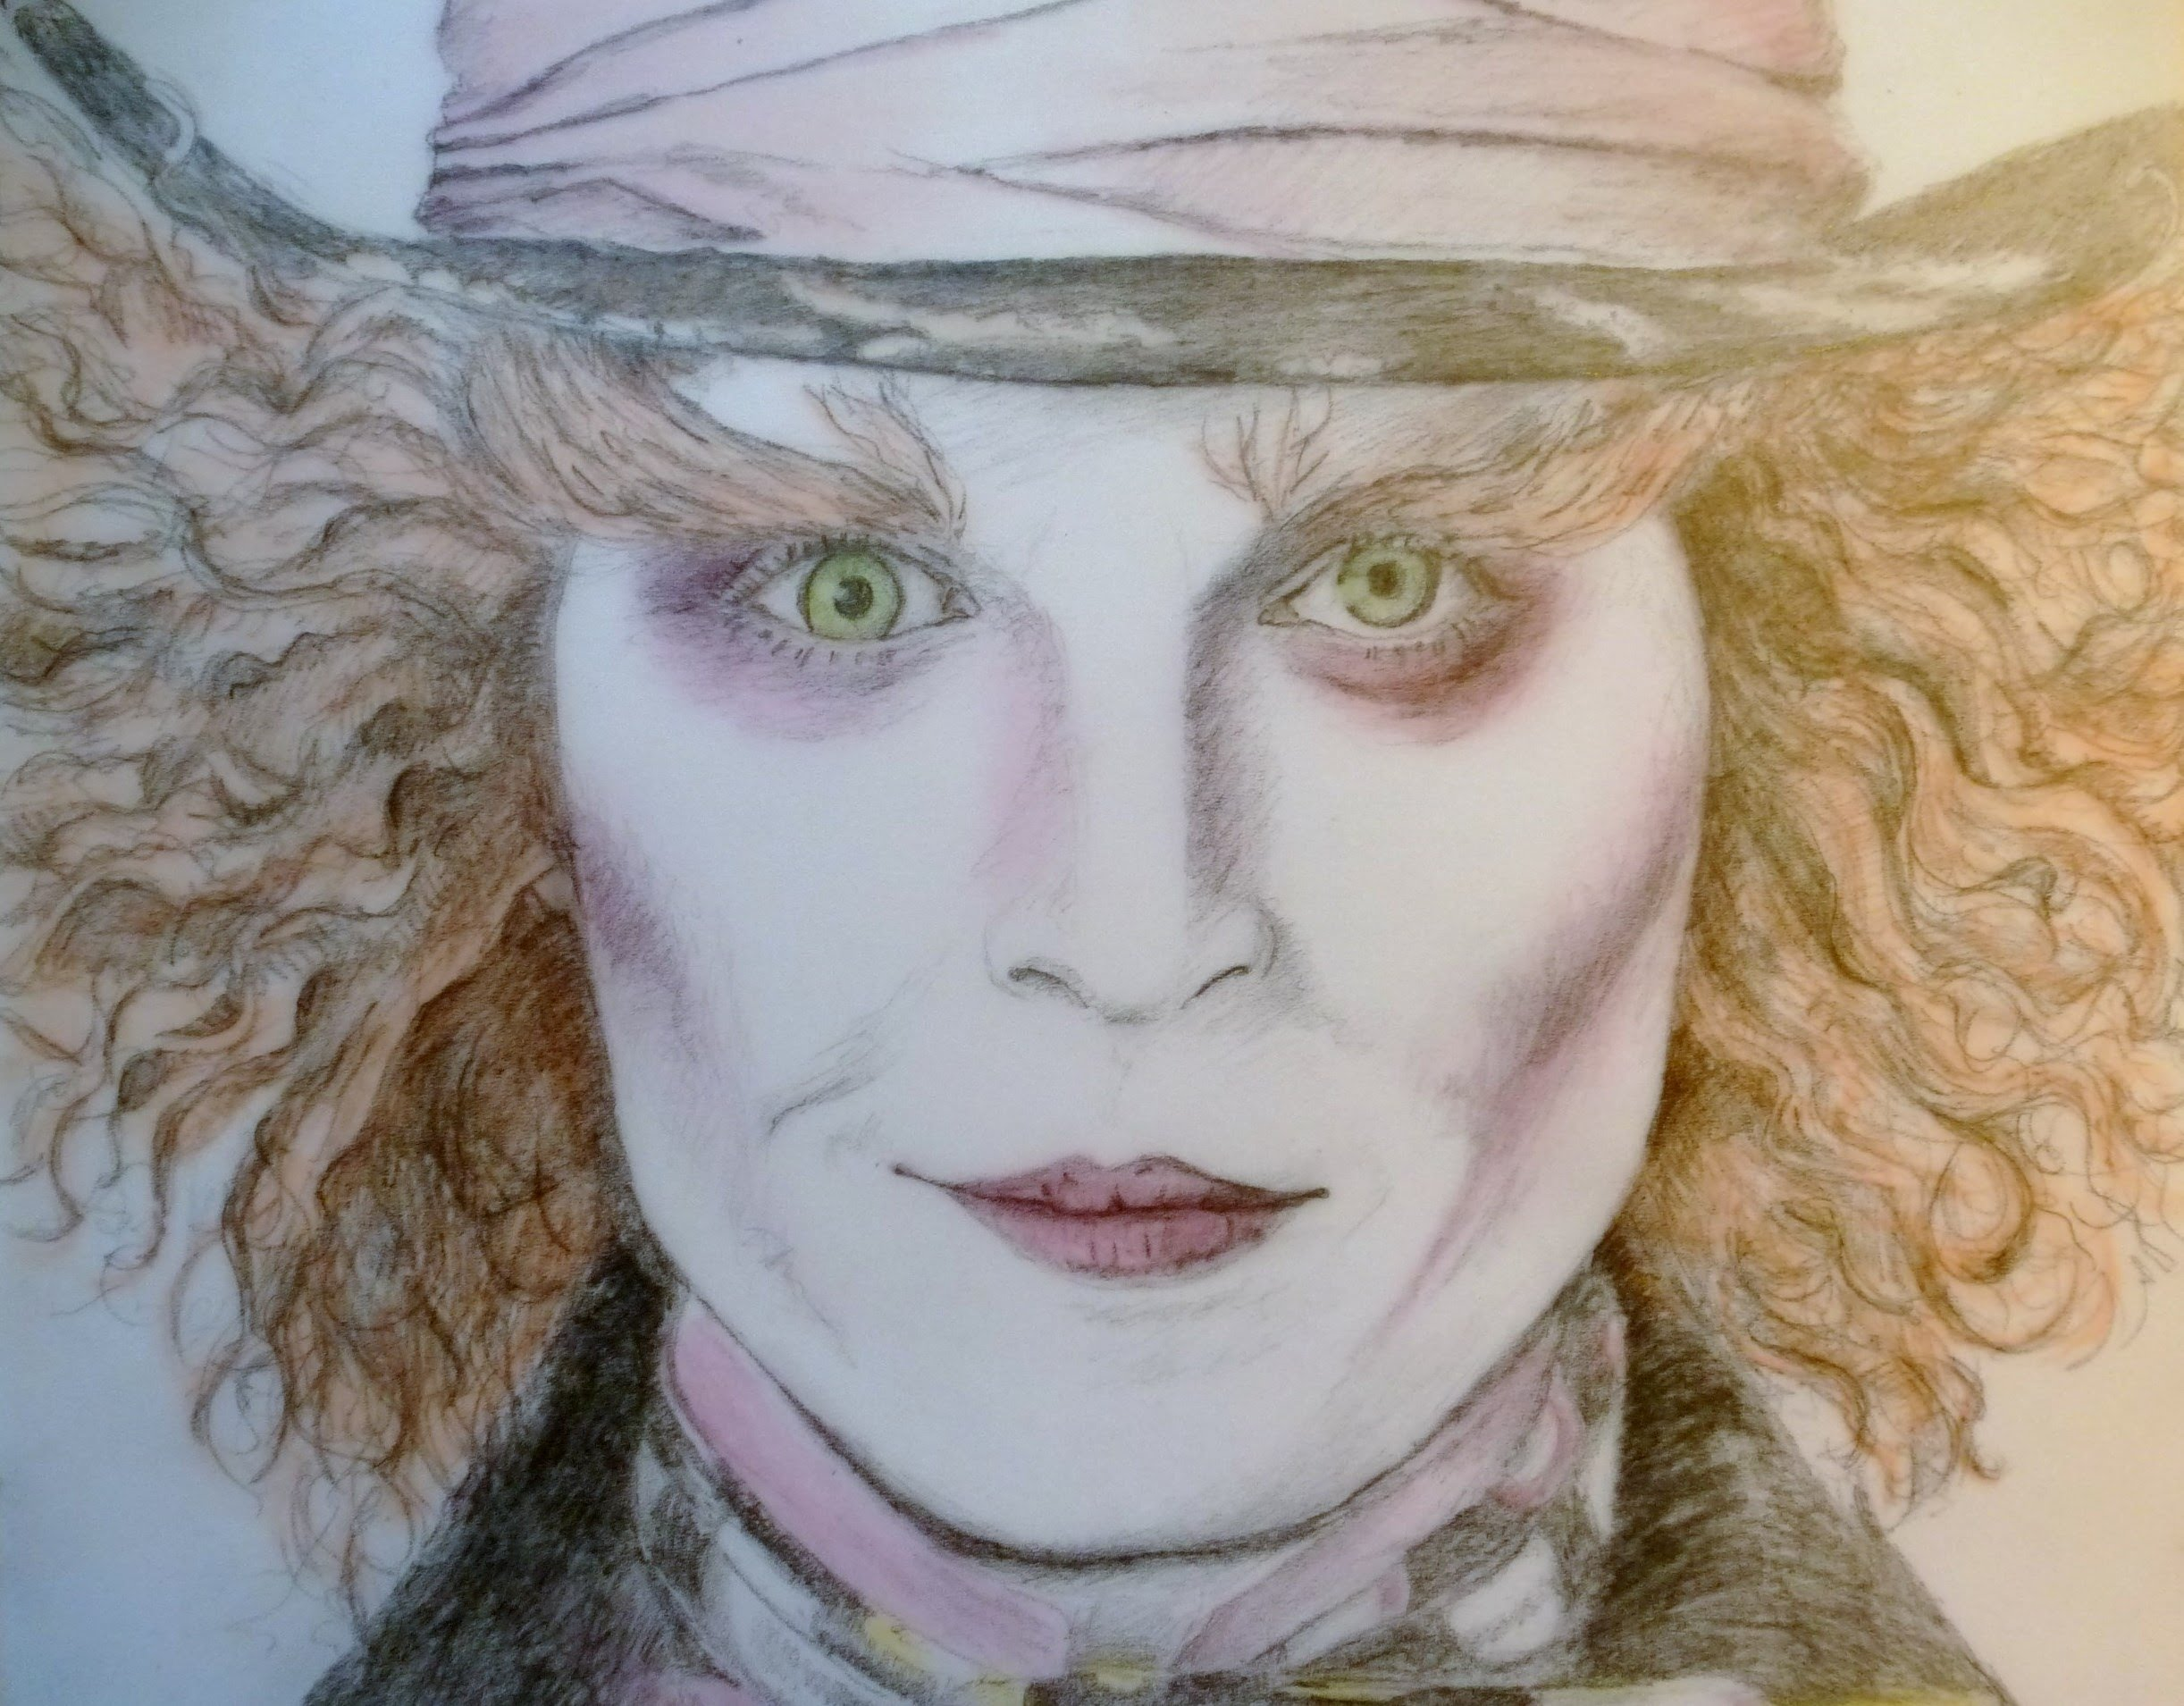 Drawn alice in wonderland mad hatter Depp) the Mad YouTube in